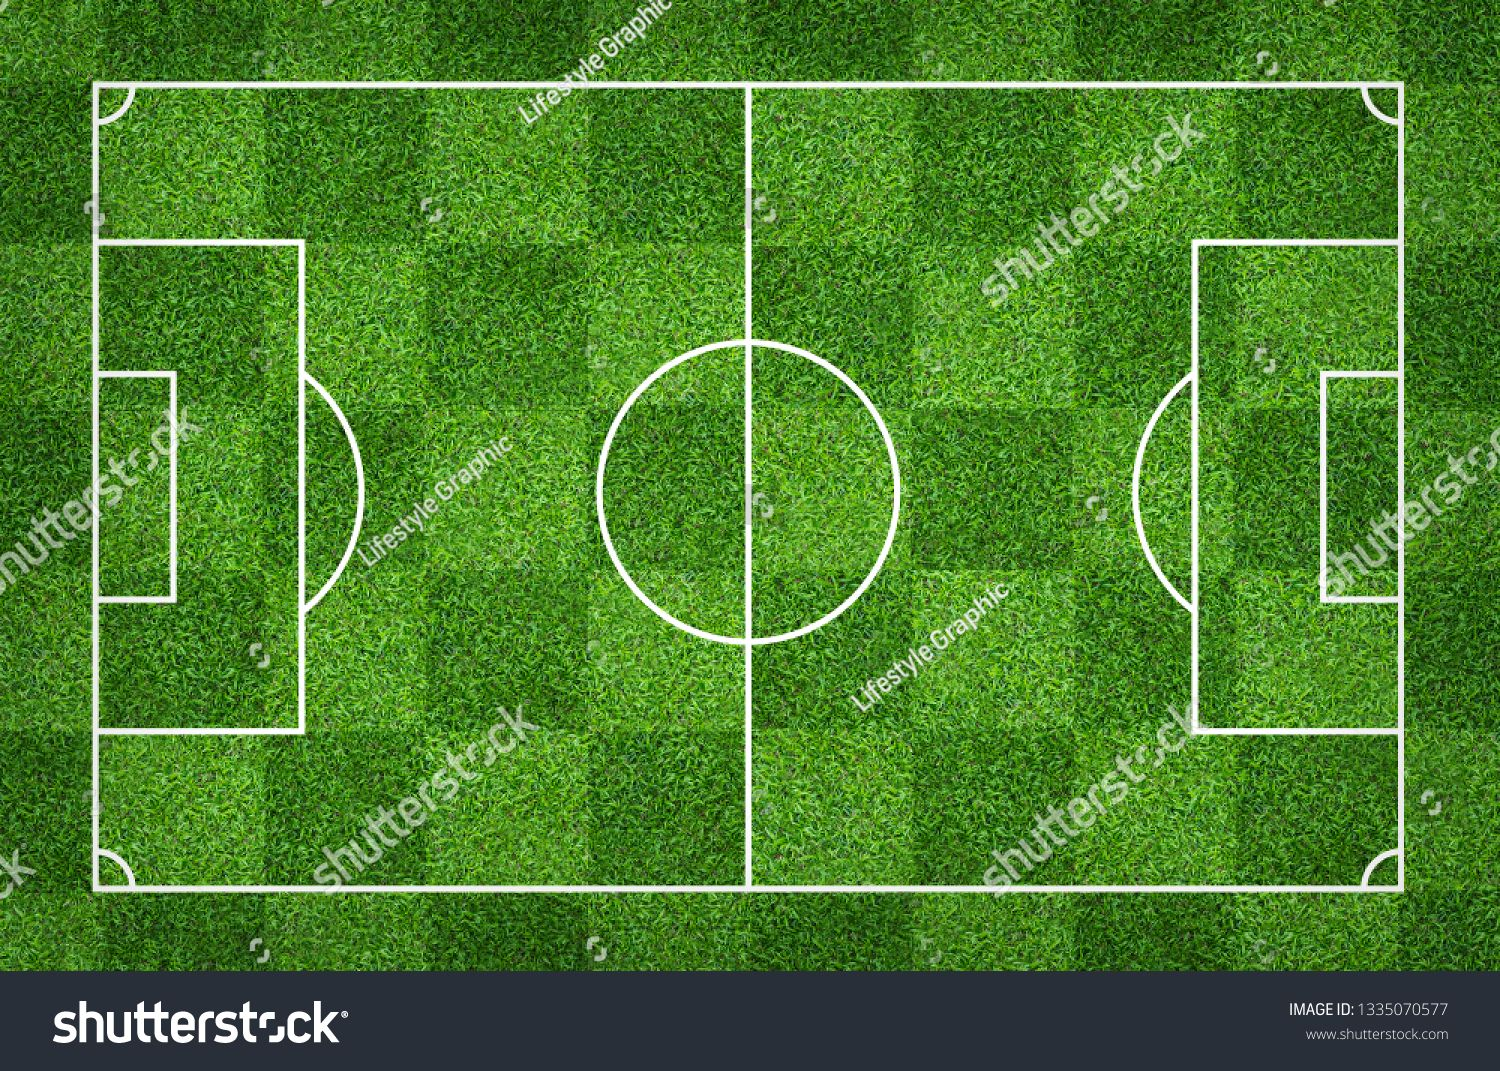 Football Field Or Soccer Field For Background Green Lawn Court For Create Sport Game Ad Ad Background Green Soccer F Soccer Field Football Field Soccer